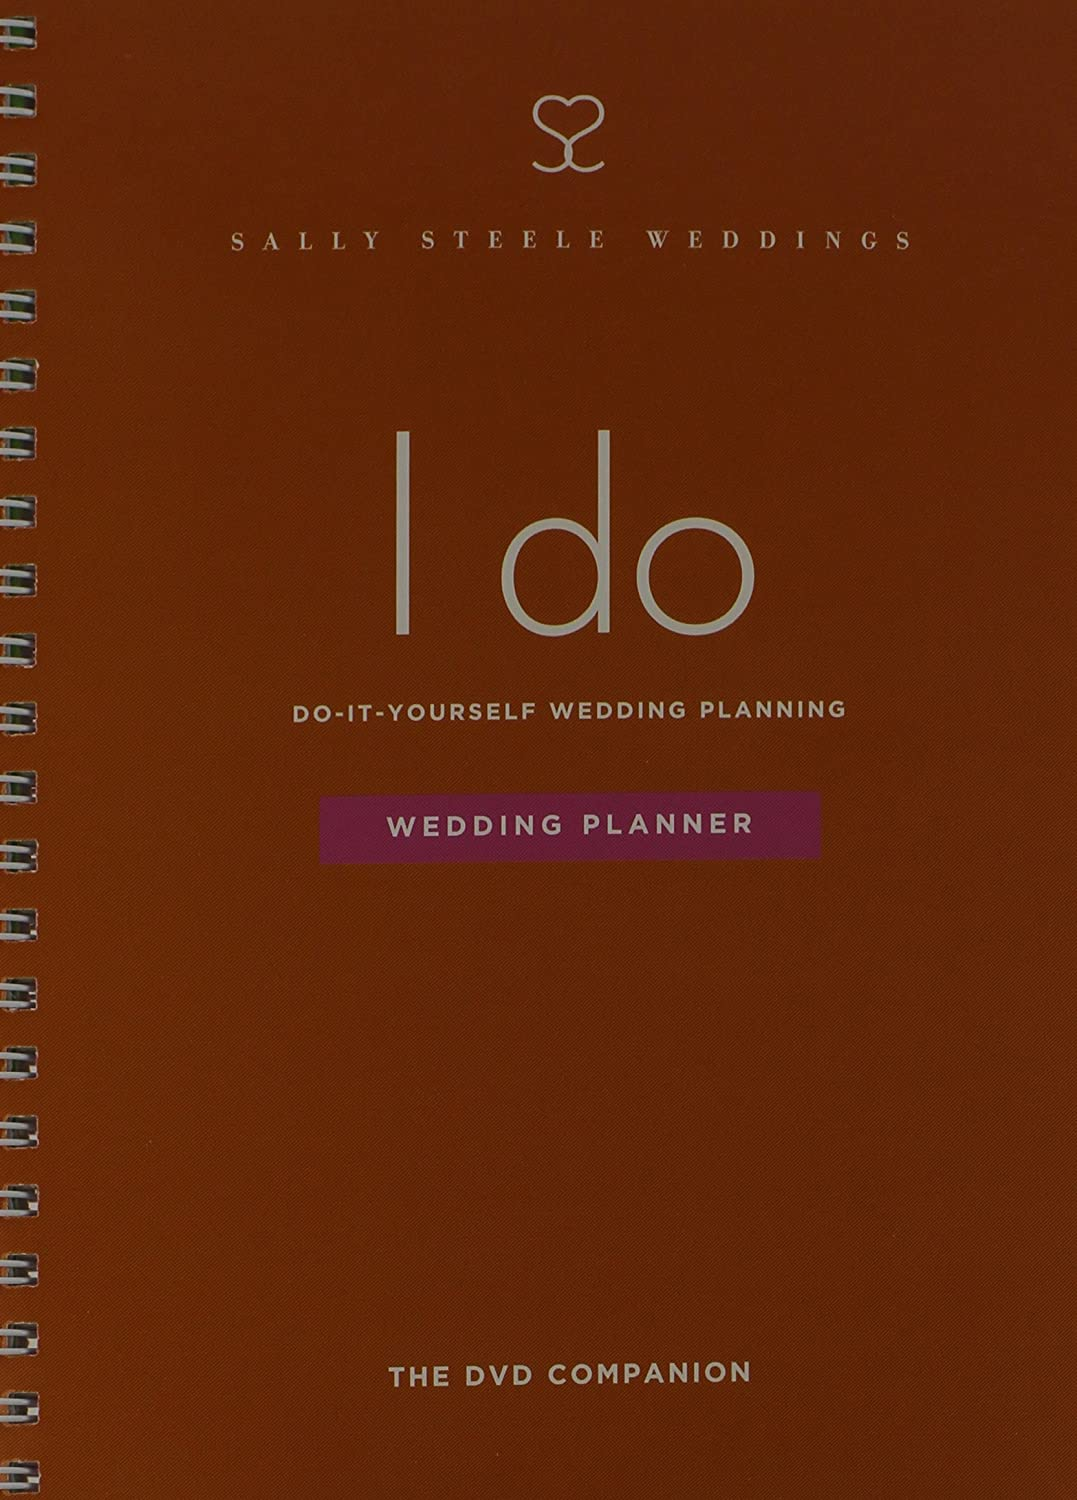 Don lichterman i do do it yourself wedding planning dvd with sally steele expert wedding planner offers advice on managing all the details to create the perfect wedding experience from the moment of engagement solutioingenieria Image collections